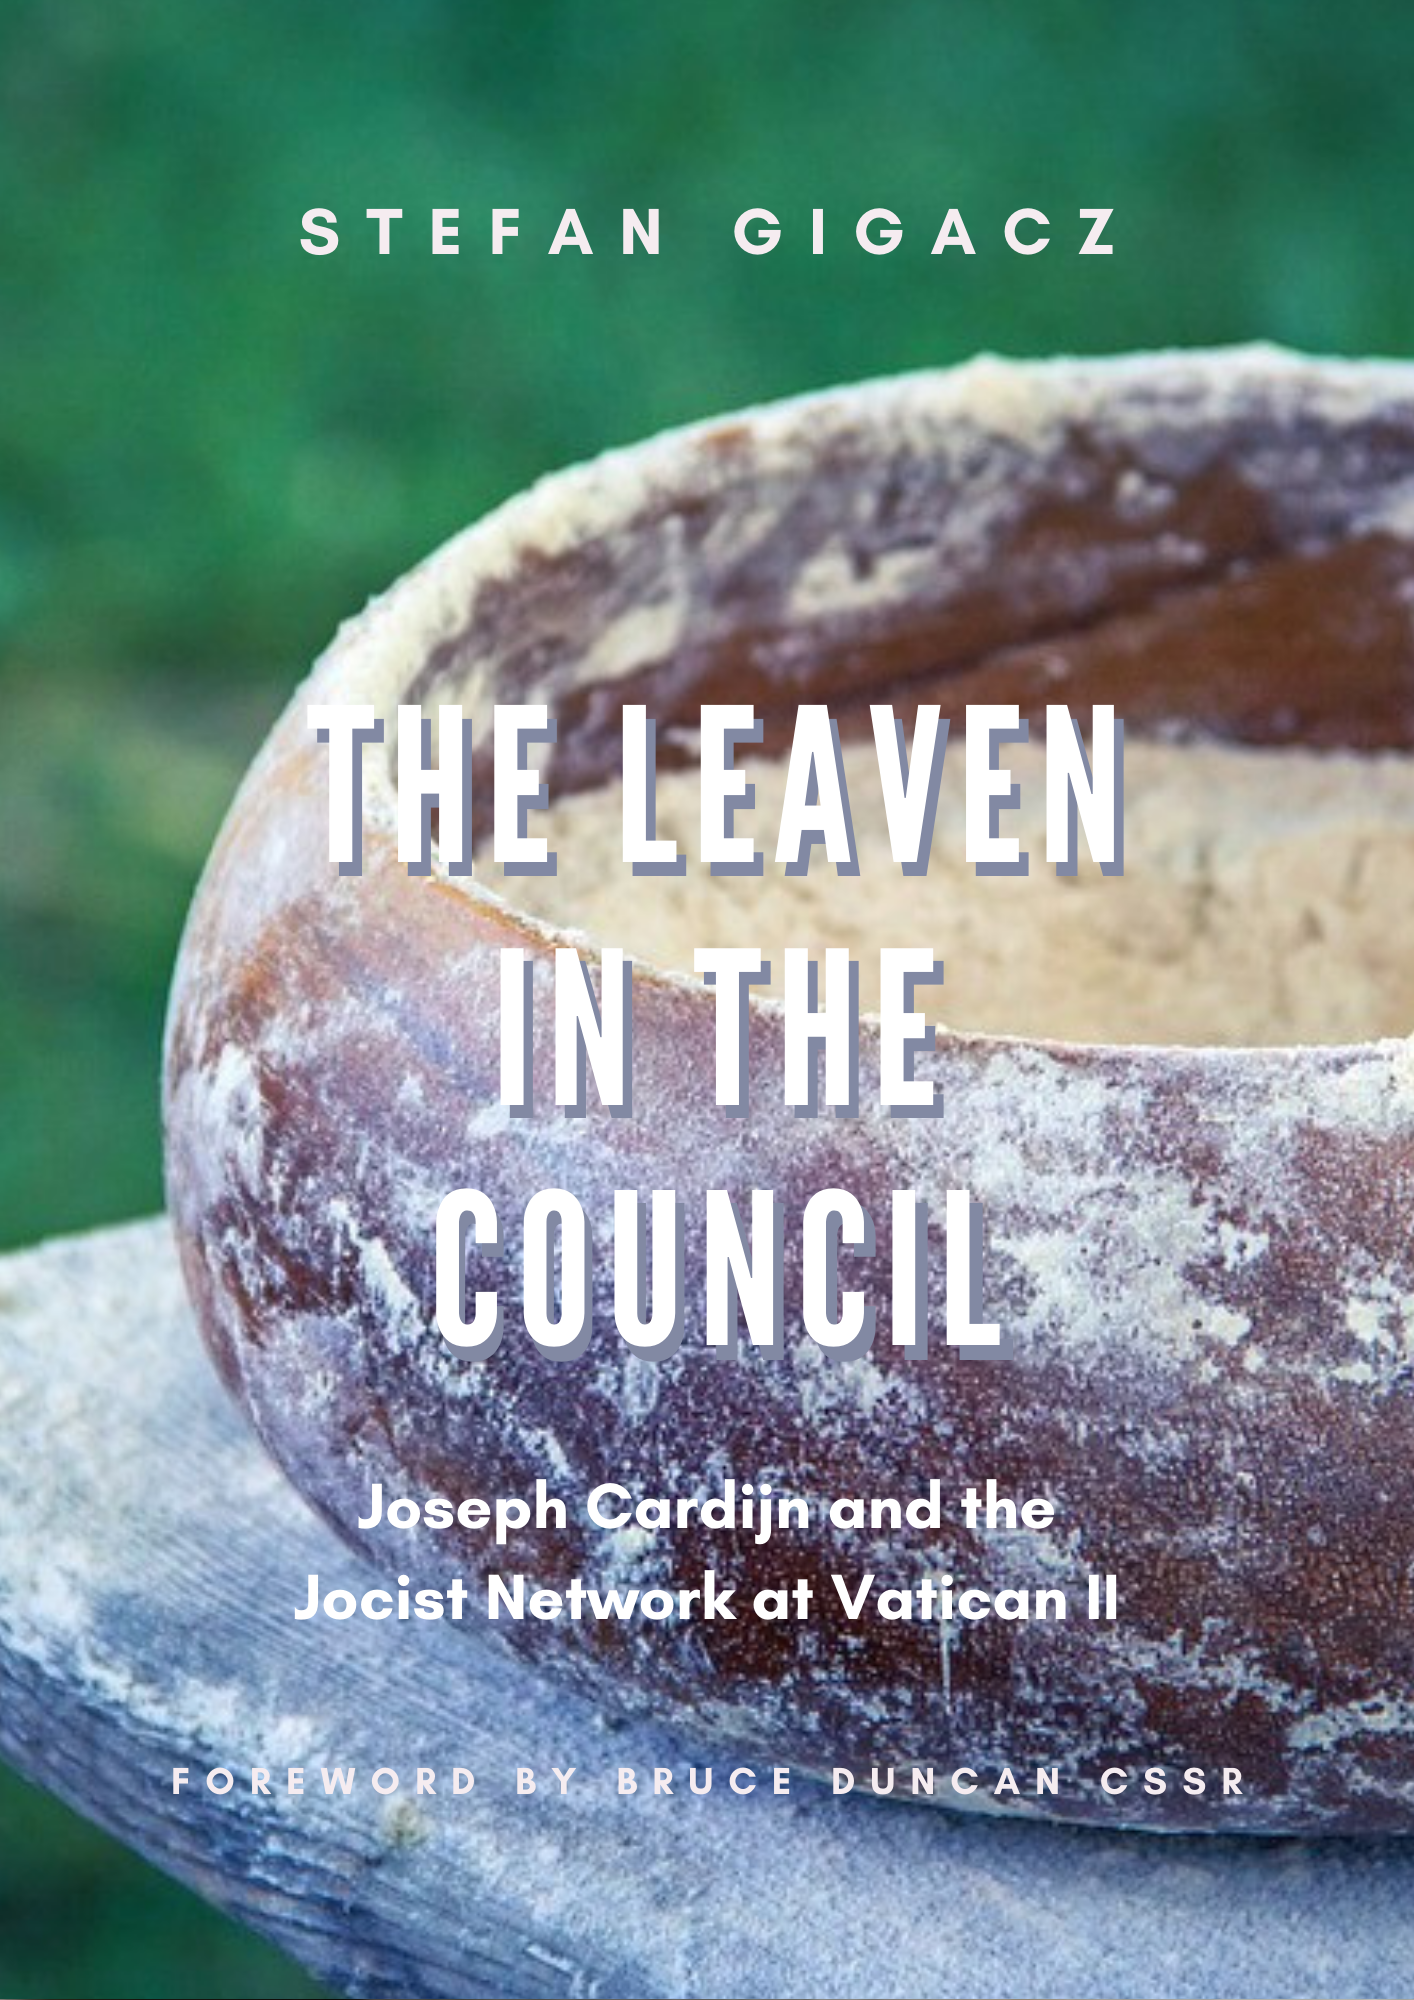 The Leaven in the Council